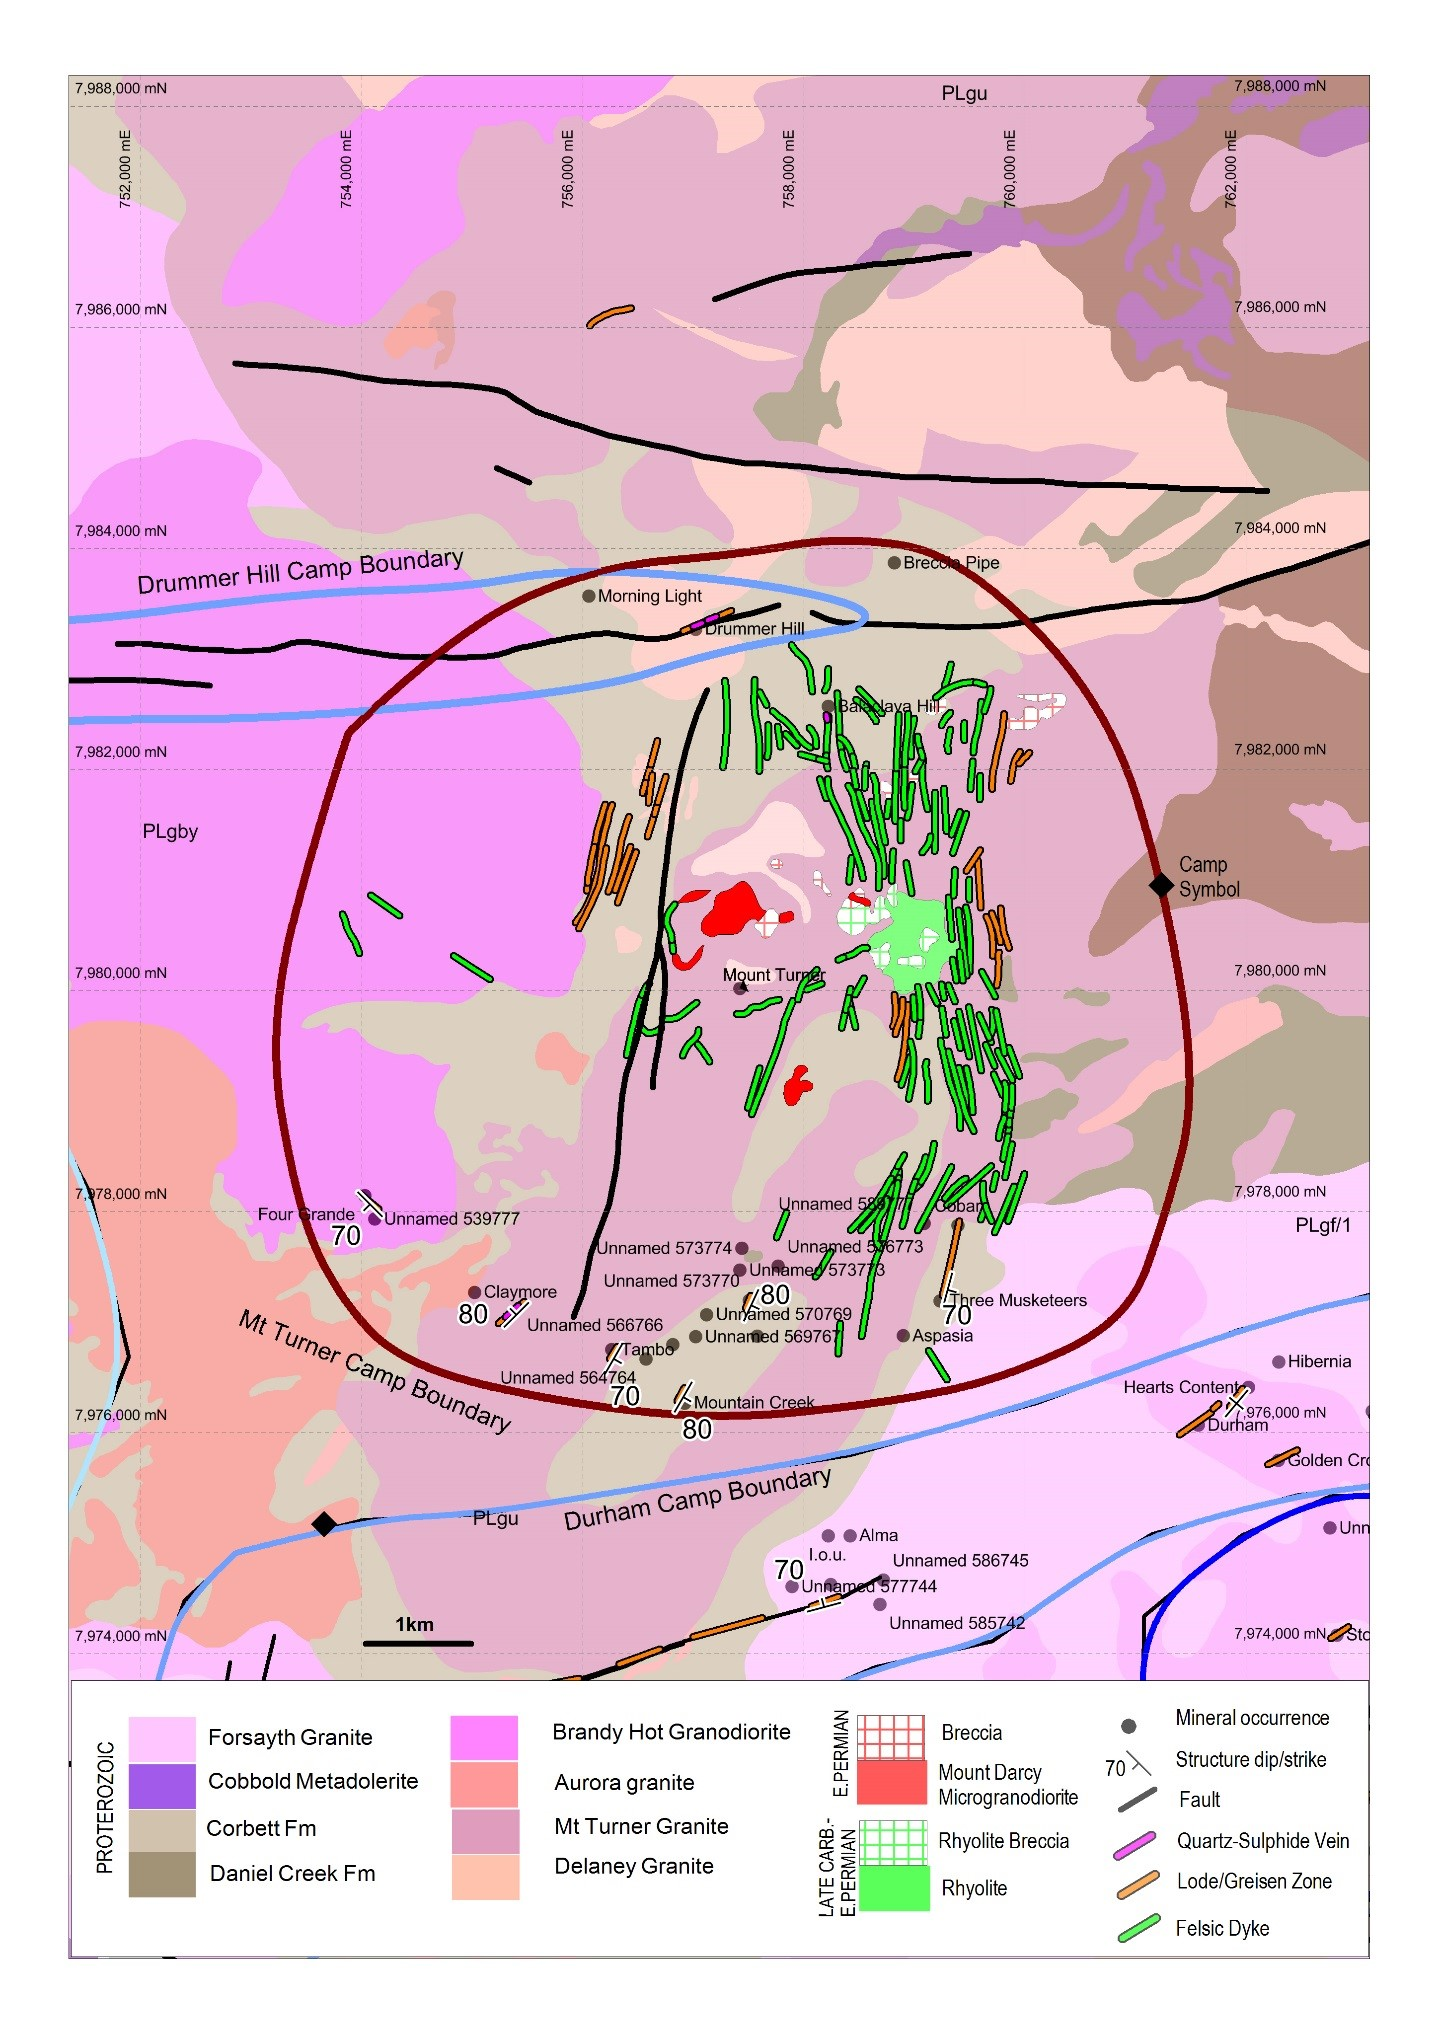 Figure 2 Mount Turner Camp. Example of GIS data available for the Georgetown Metallogenic Study area i.e. geology, structure, dyke – lode – vein orientations, mineral occurrence locations etc